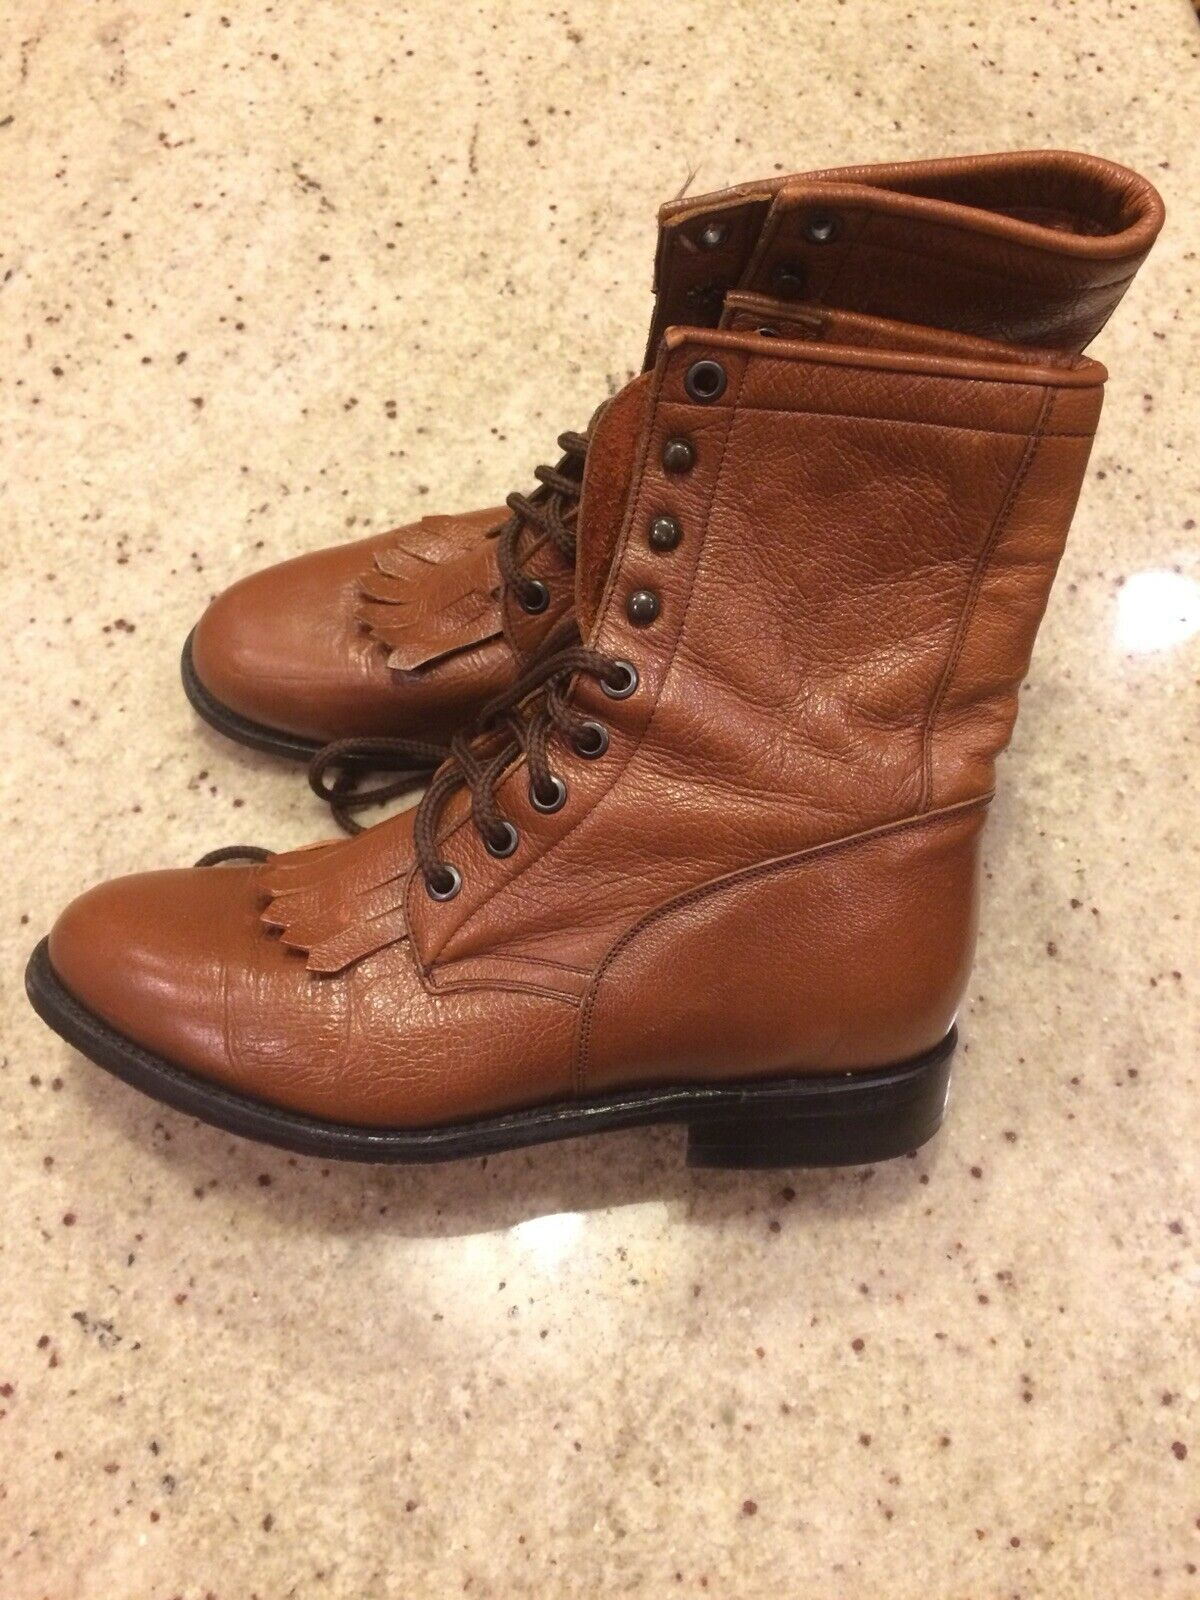 BEN MILLER Leather Lace Up Cowboy Roper Ankle Boots shoes Women's Size 7